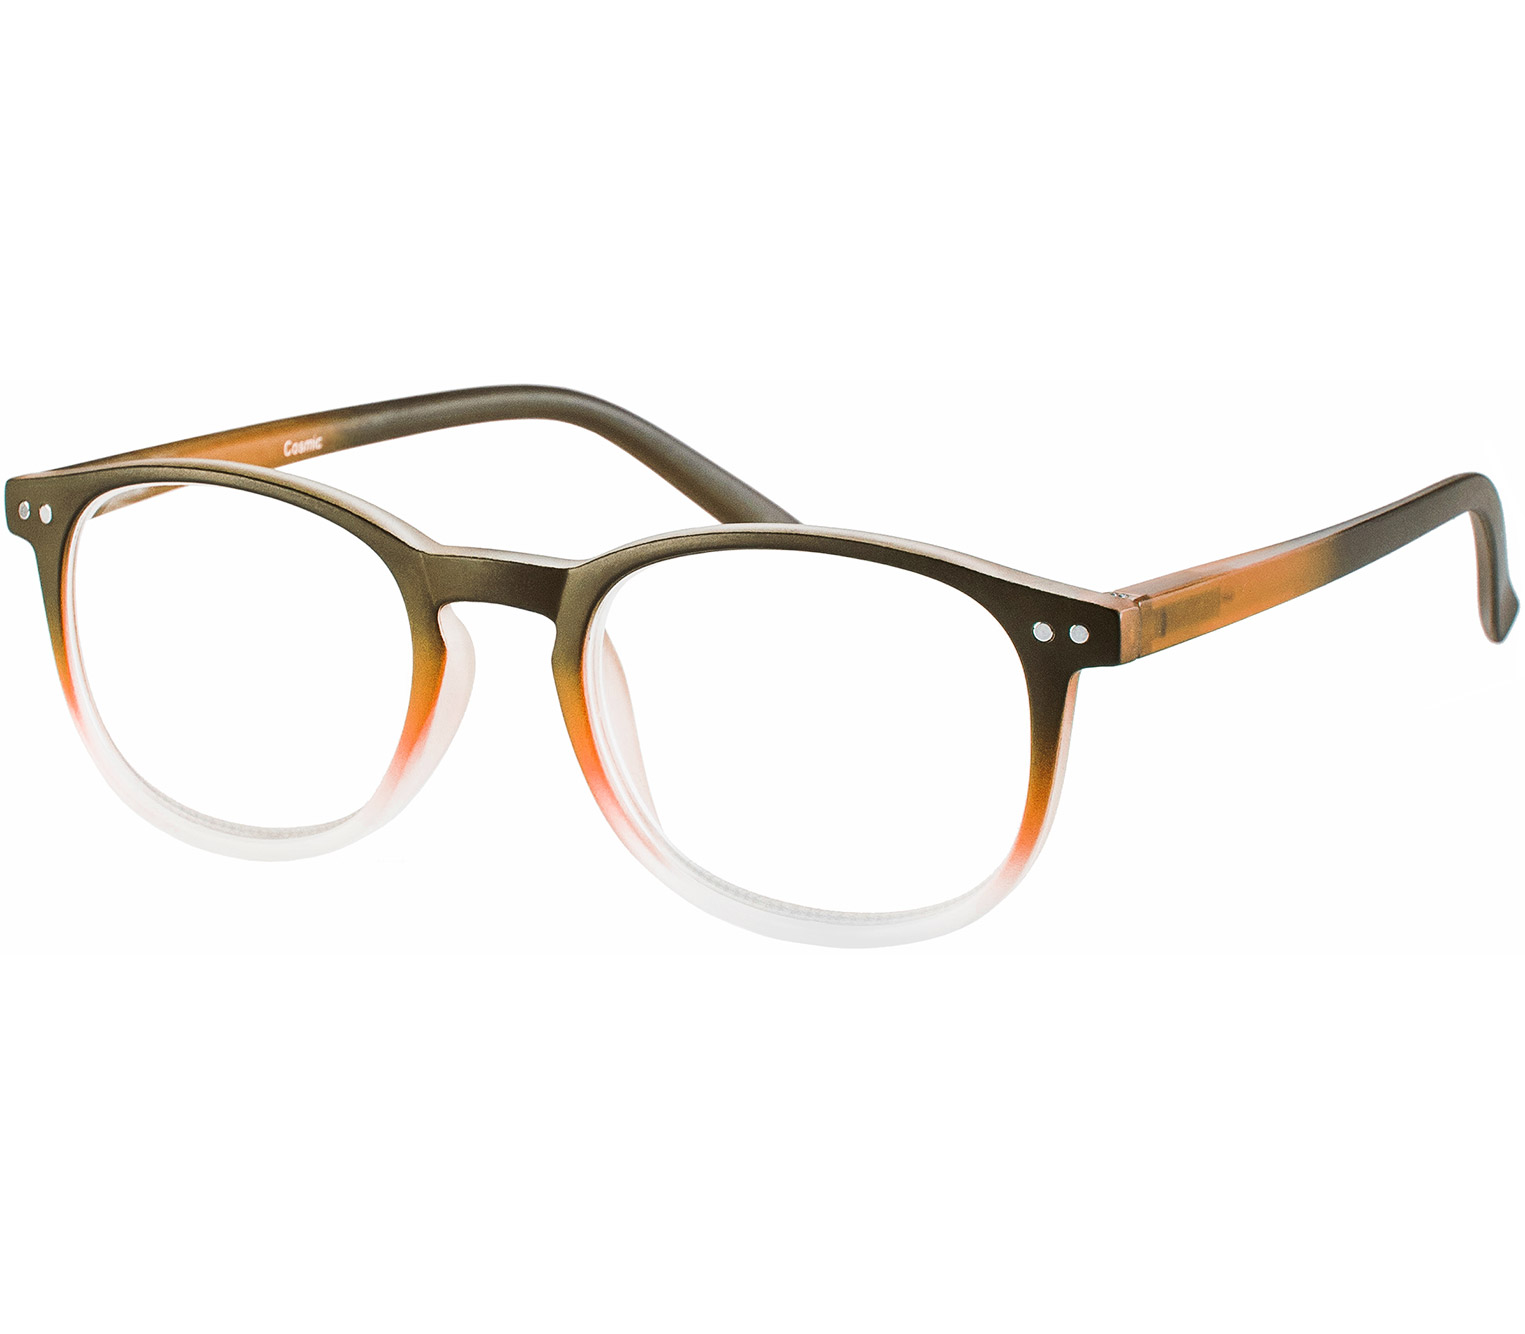 Main Image (Angle) - Cosmic (Orange) Retro Reading Glasses